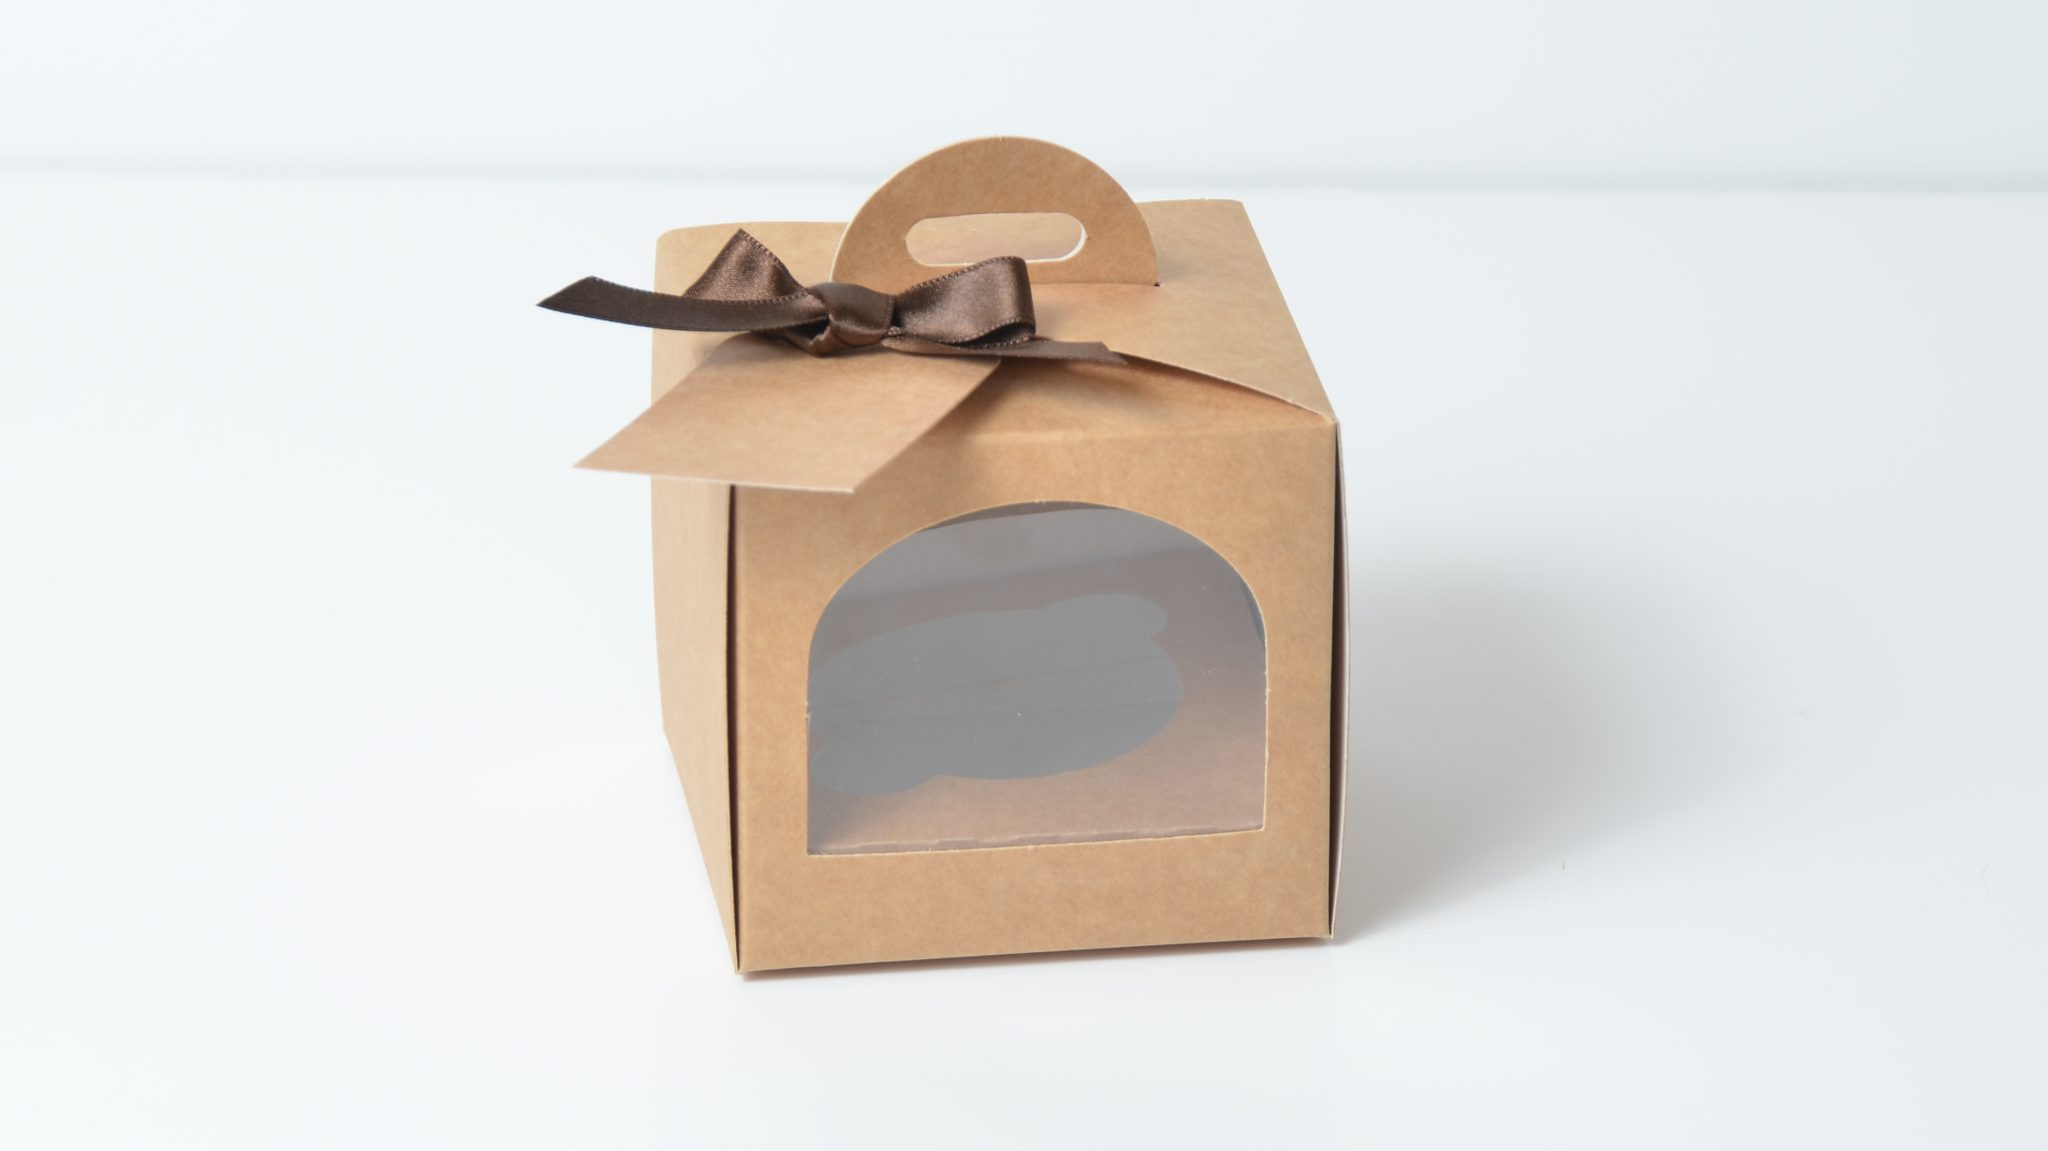 Kraft Single Eco Dome Cup Cake Box with arch window & insert